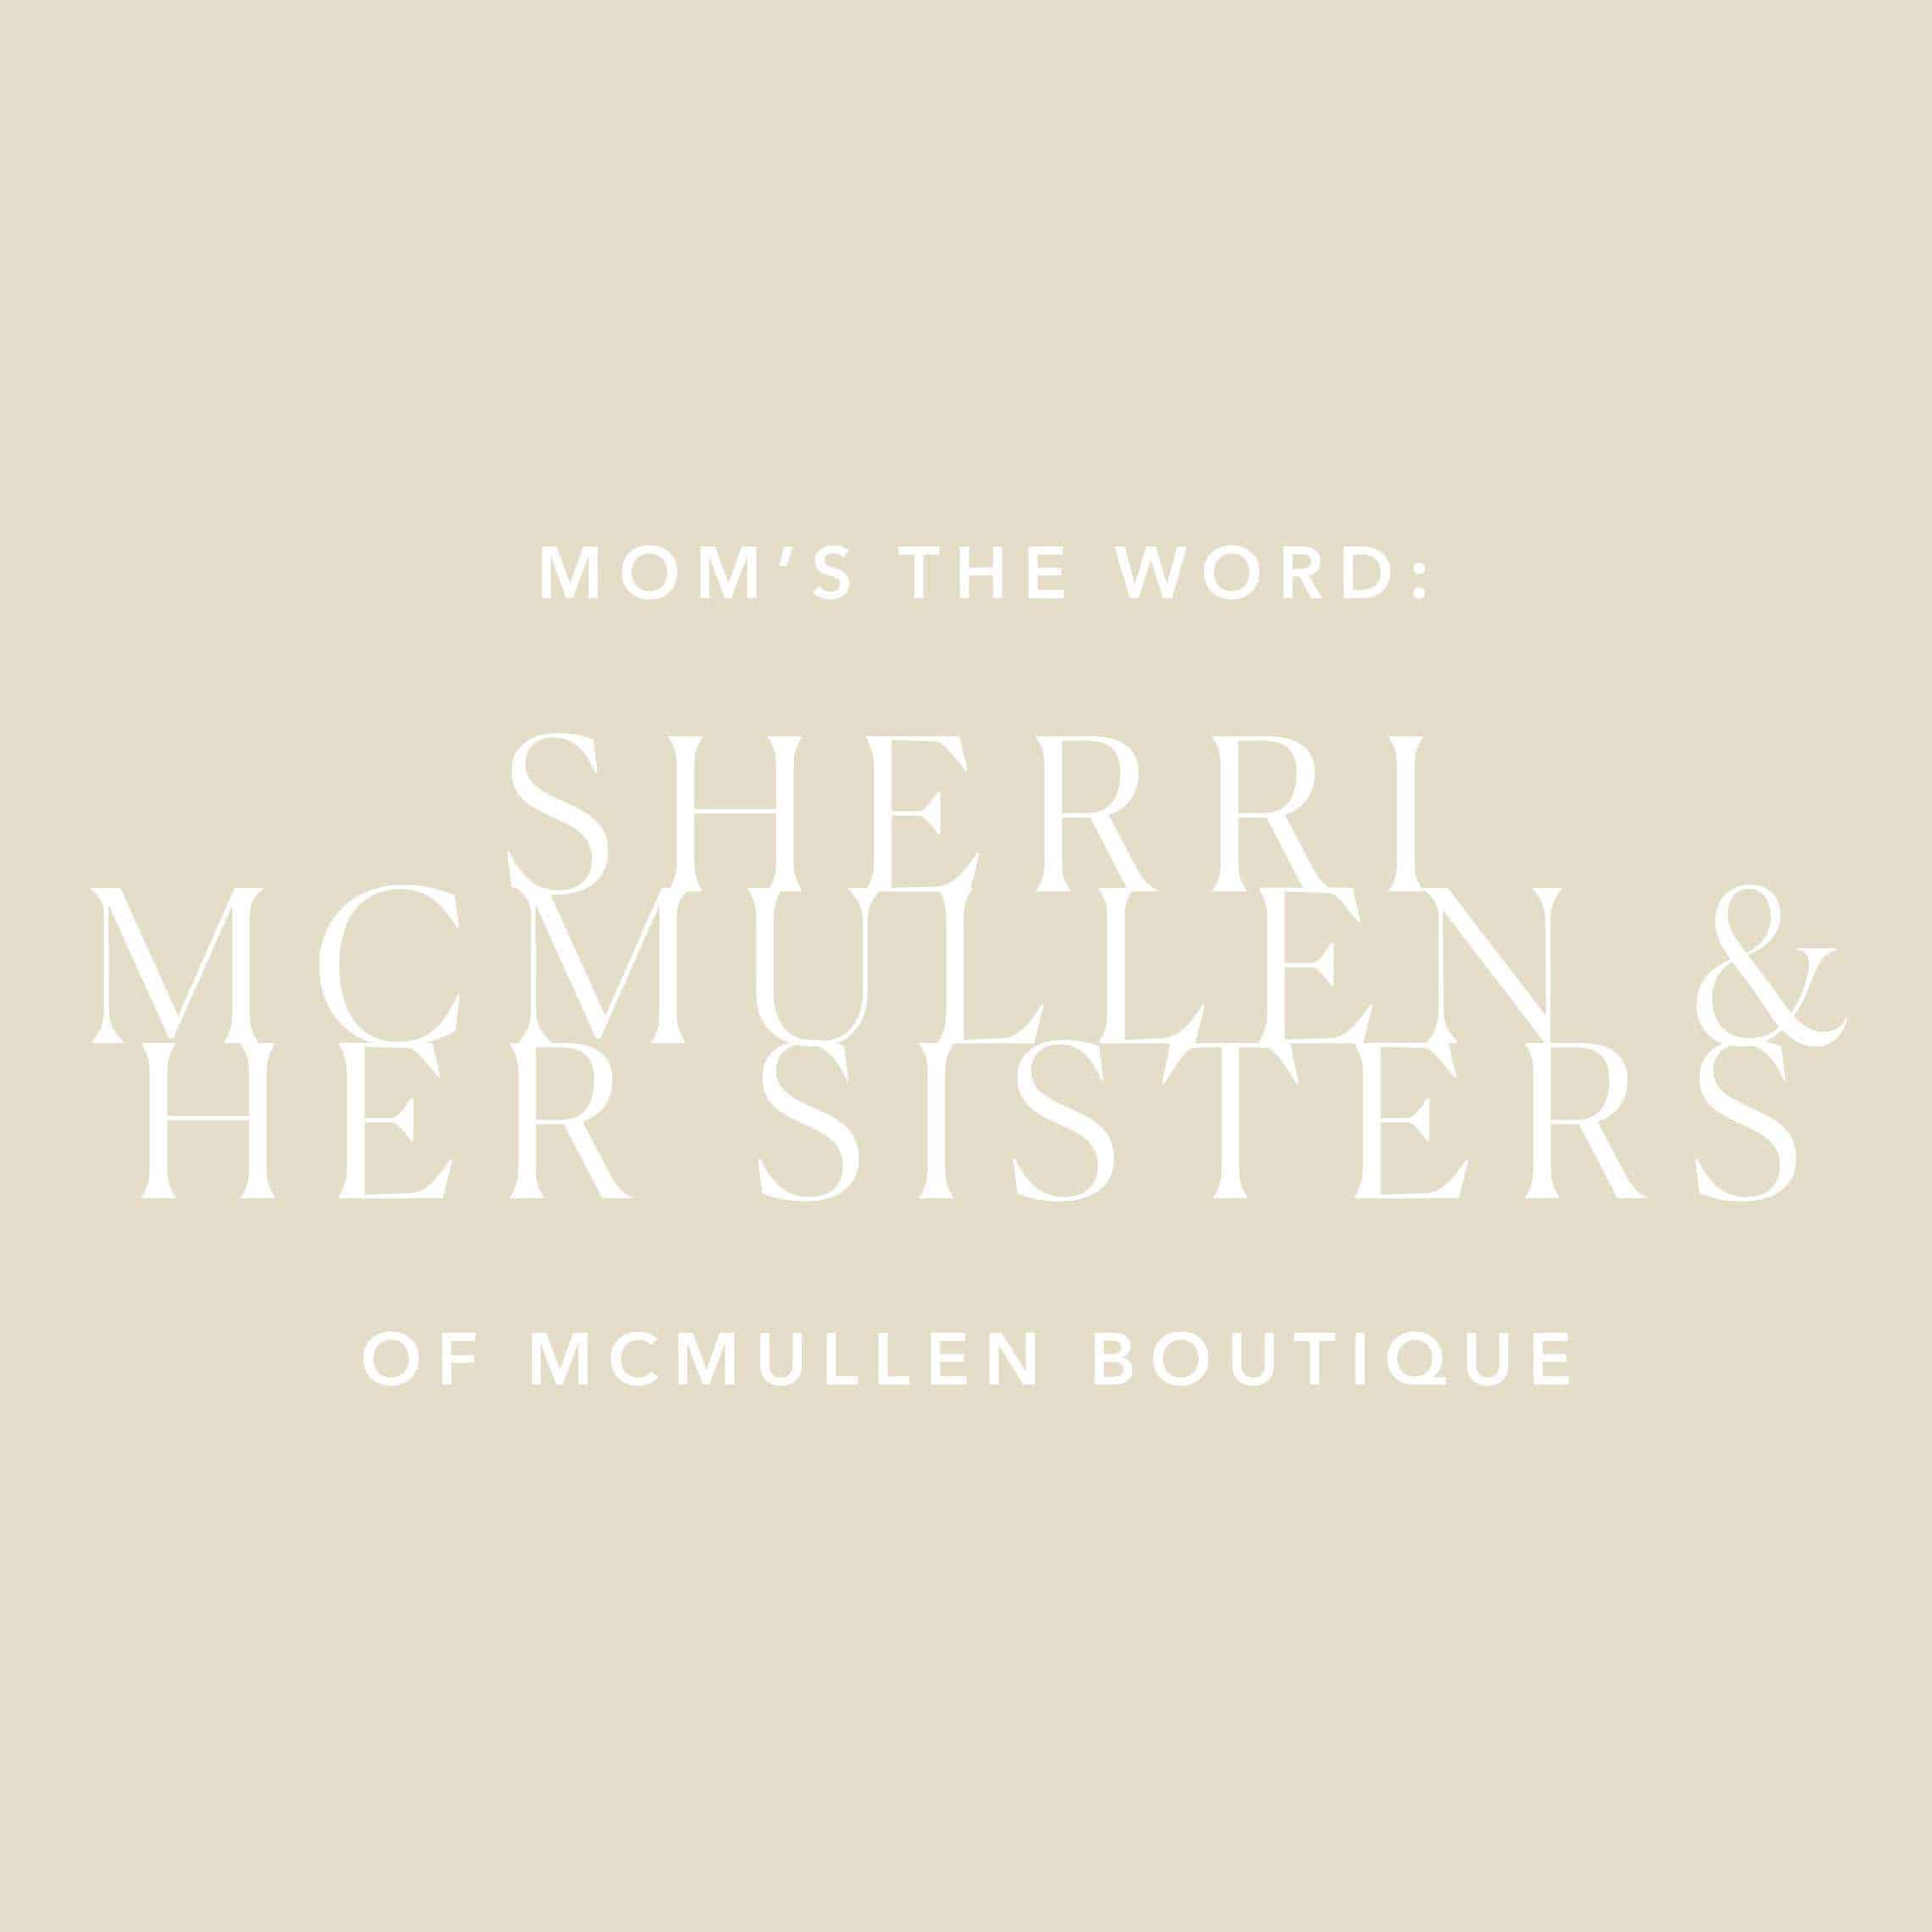 Mom's The Word: Sherri McMullen & Her Sisters 7